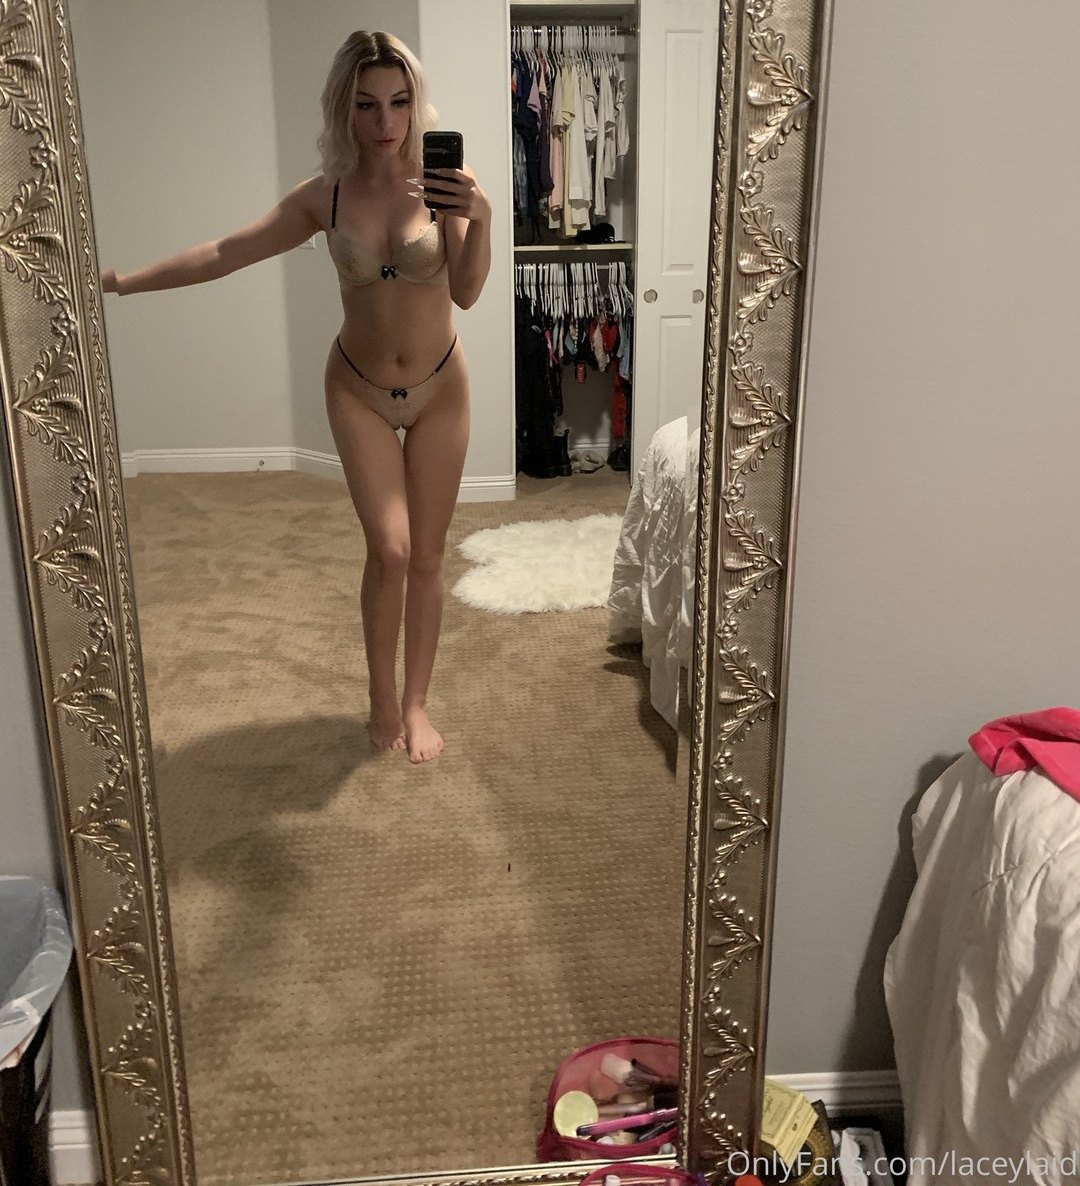 Lacey Laid Laceylaid Onlyfans Nudes Leaks 0007